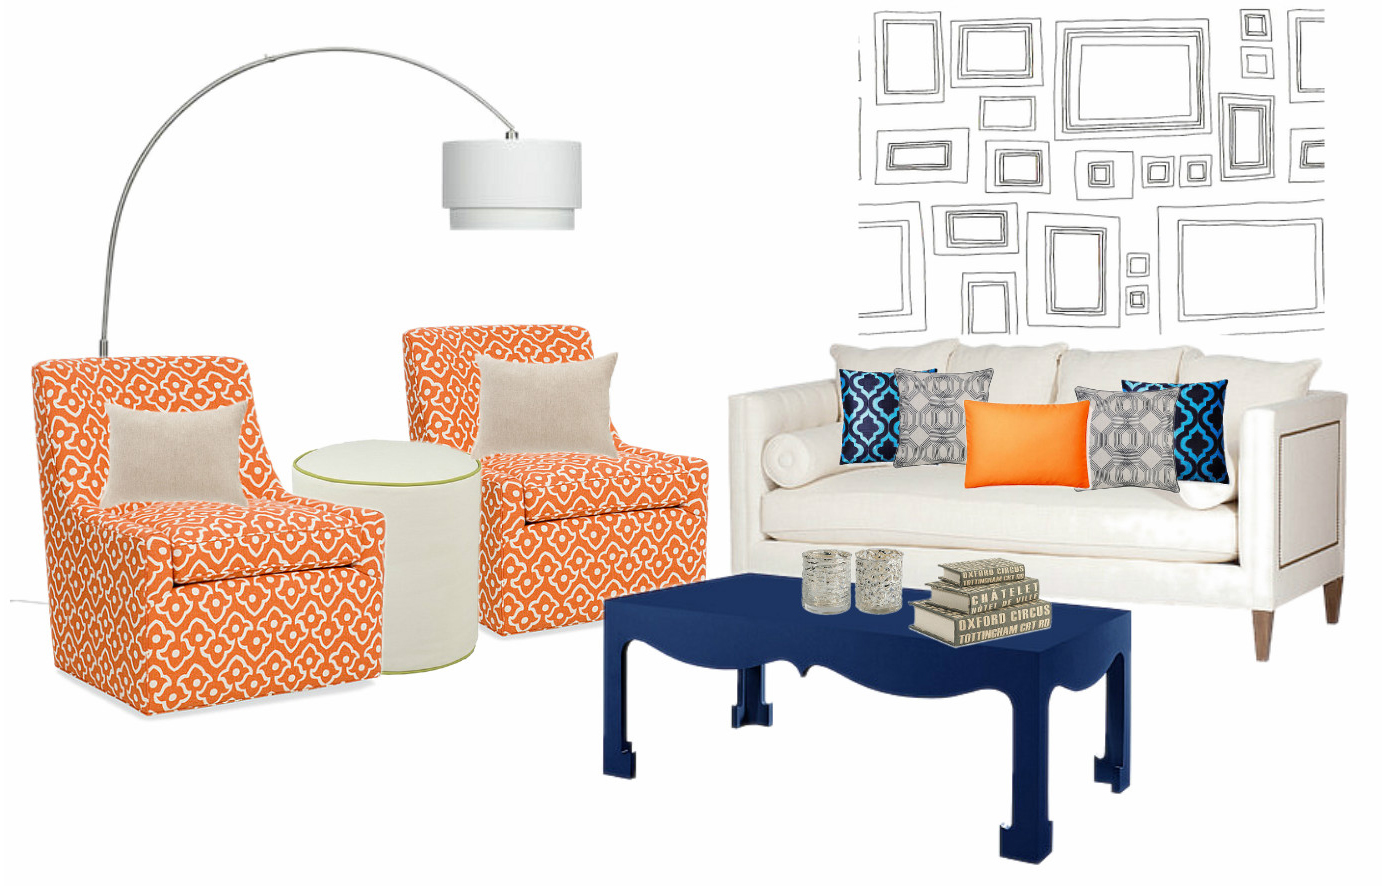 Orange & Blue Interior Inspiration Board #InspirationTuesdays |